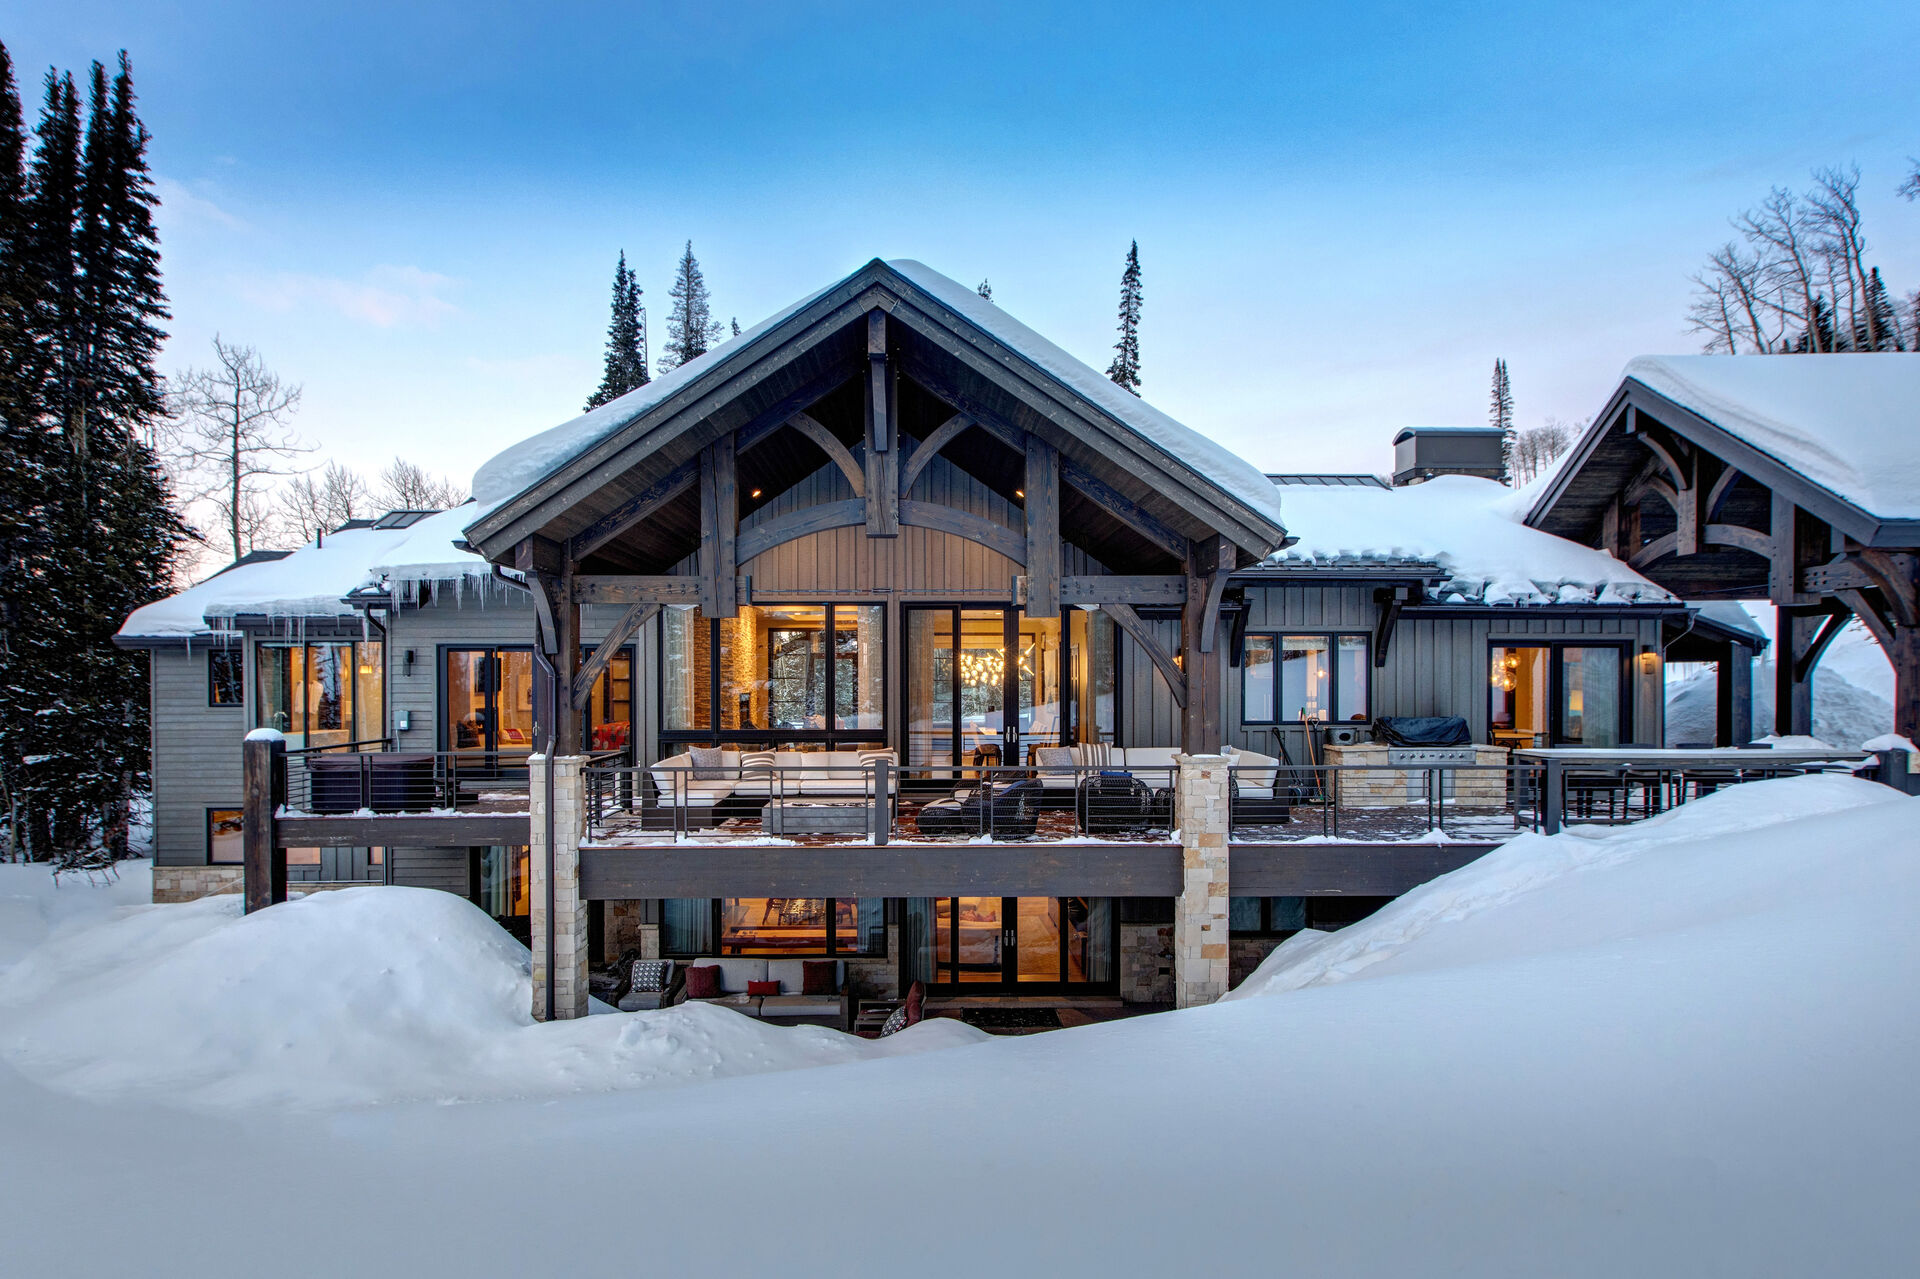 Front Picture of One of Our Rentals in Park City, Utah.